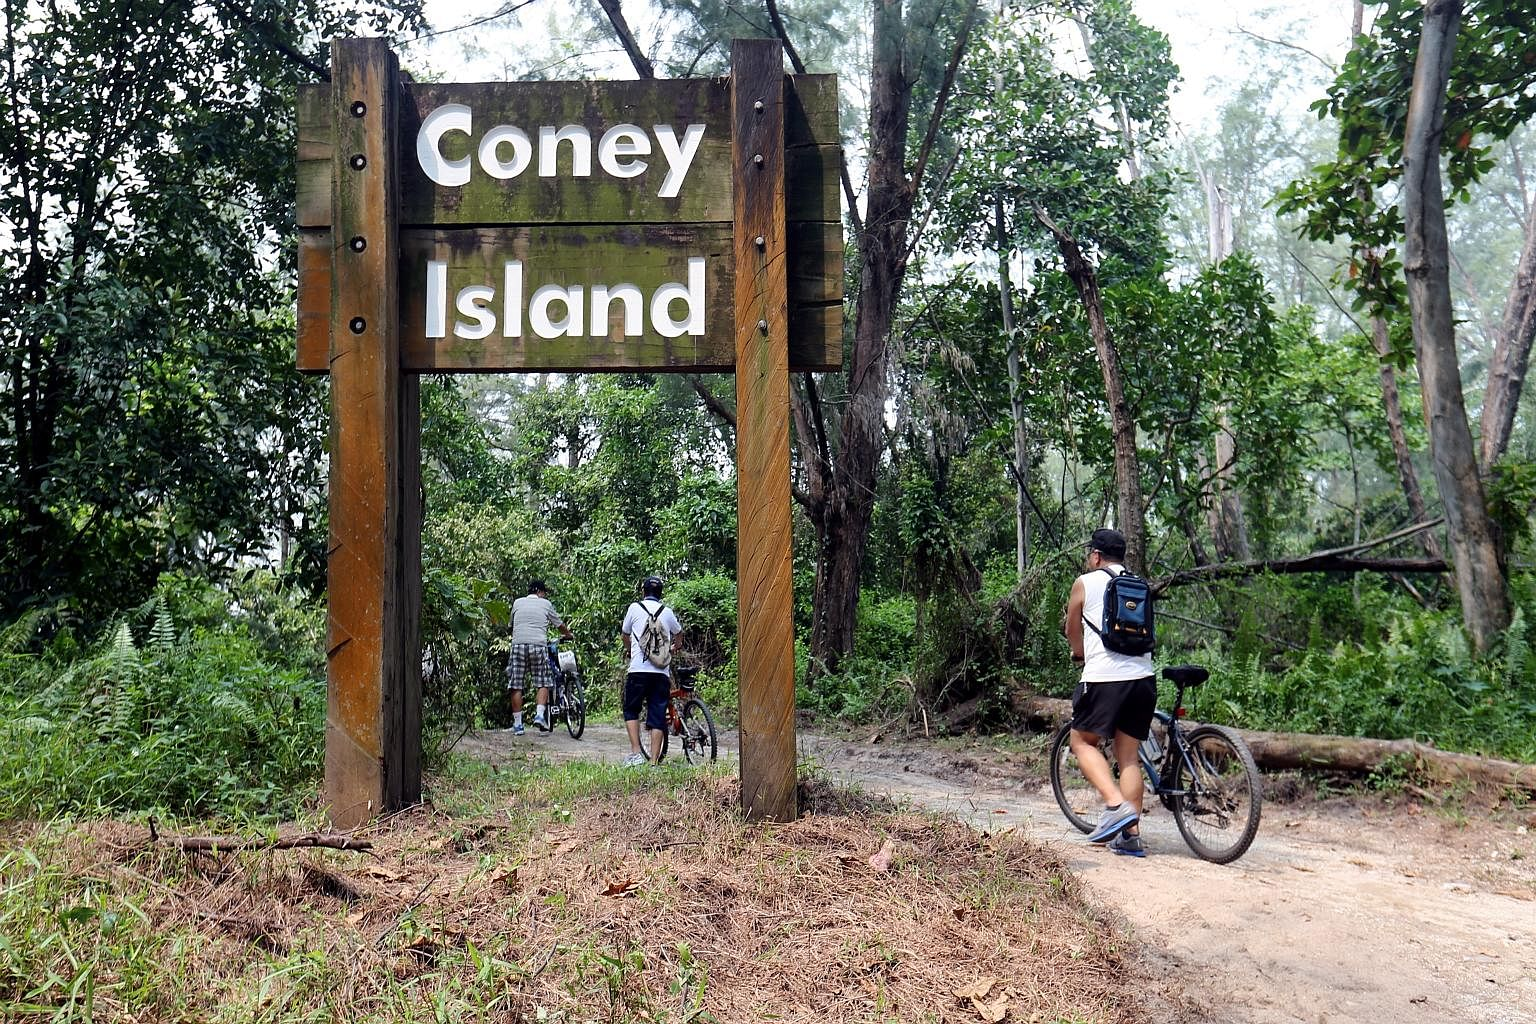 Instead of a housing development for the non-park portion of Coney Island, the writer recommends building eco-friendly structures, such as small low-rise chalets, camps and canoeing clubs, that can be integrated into the nature park area.